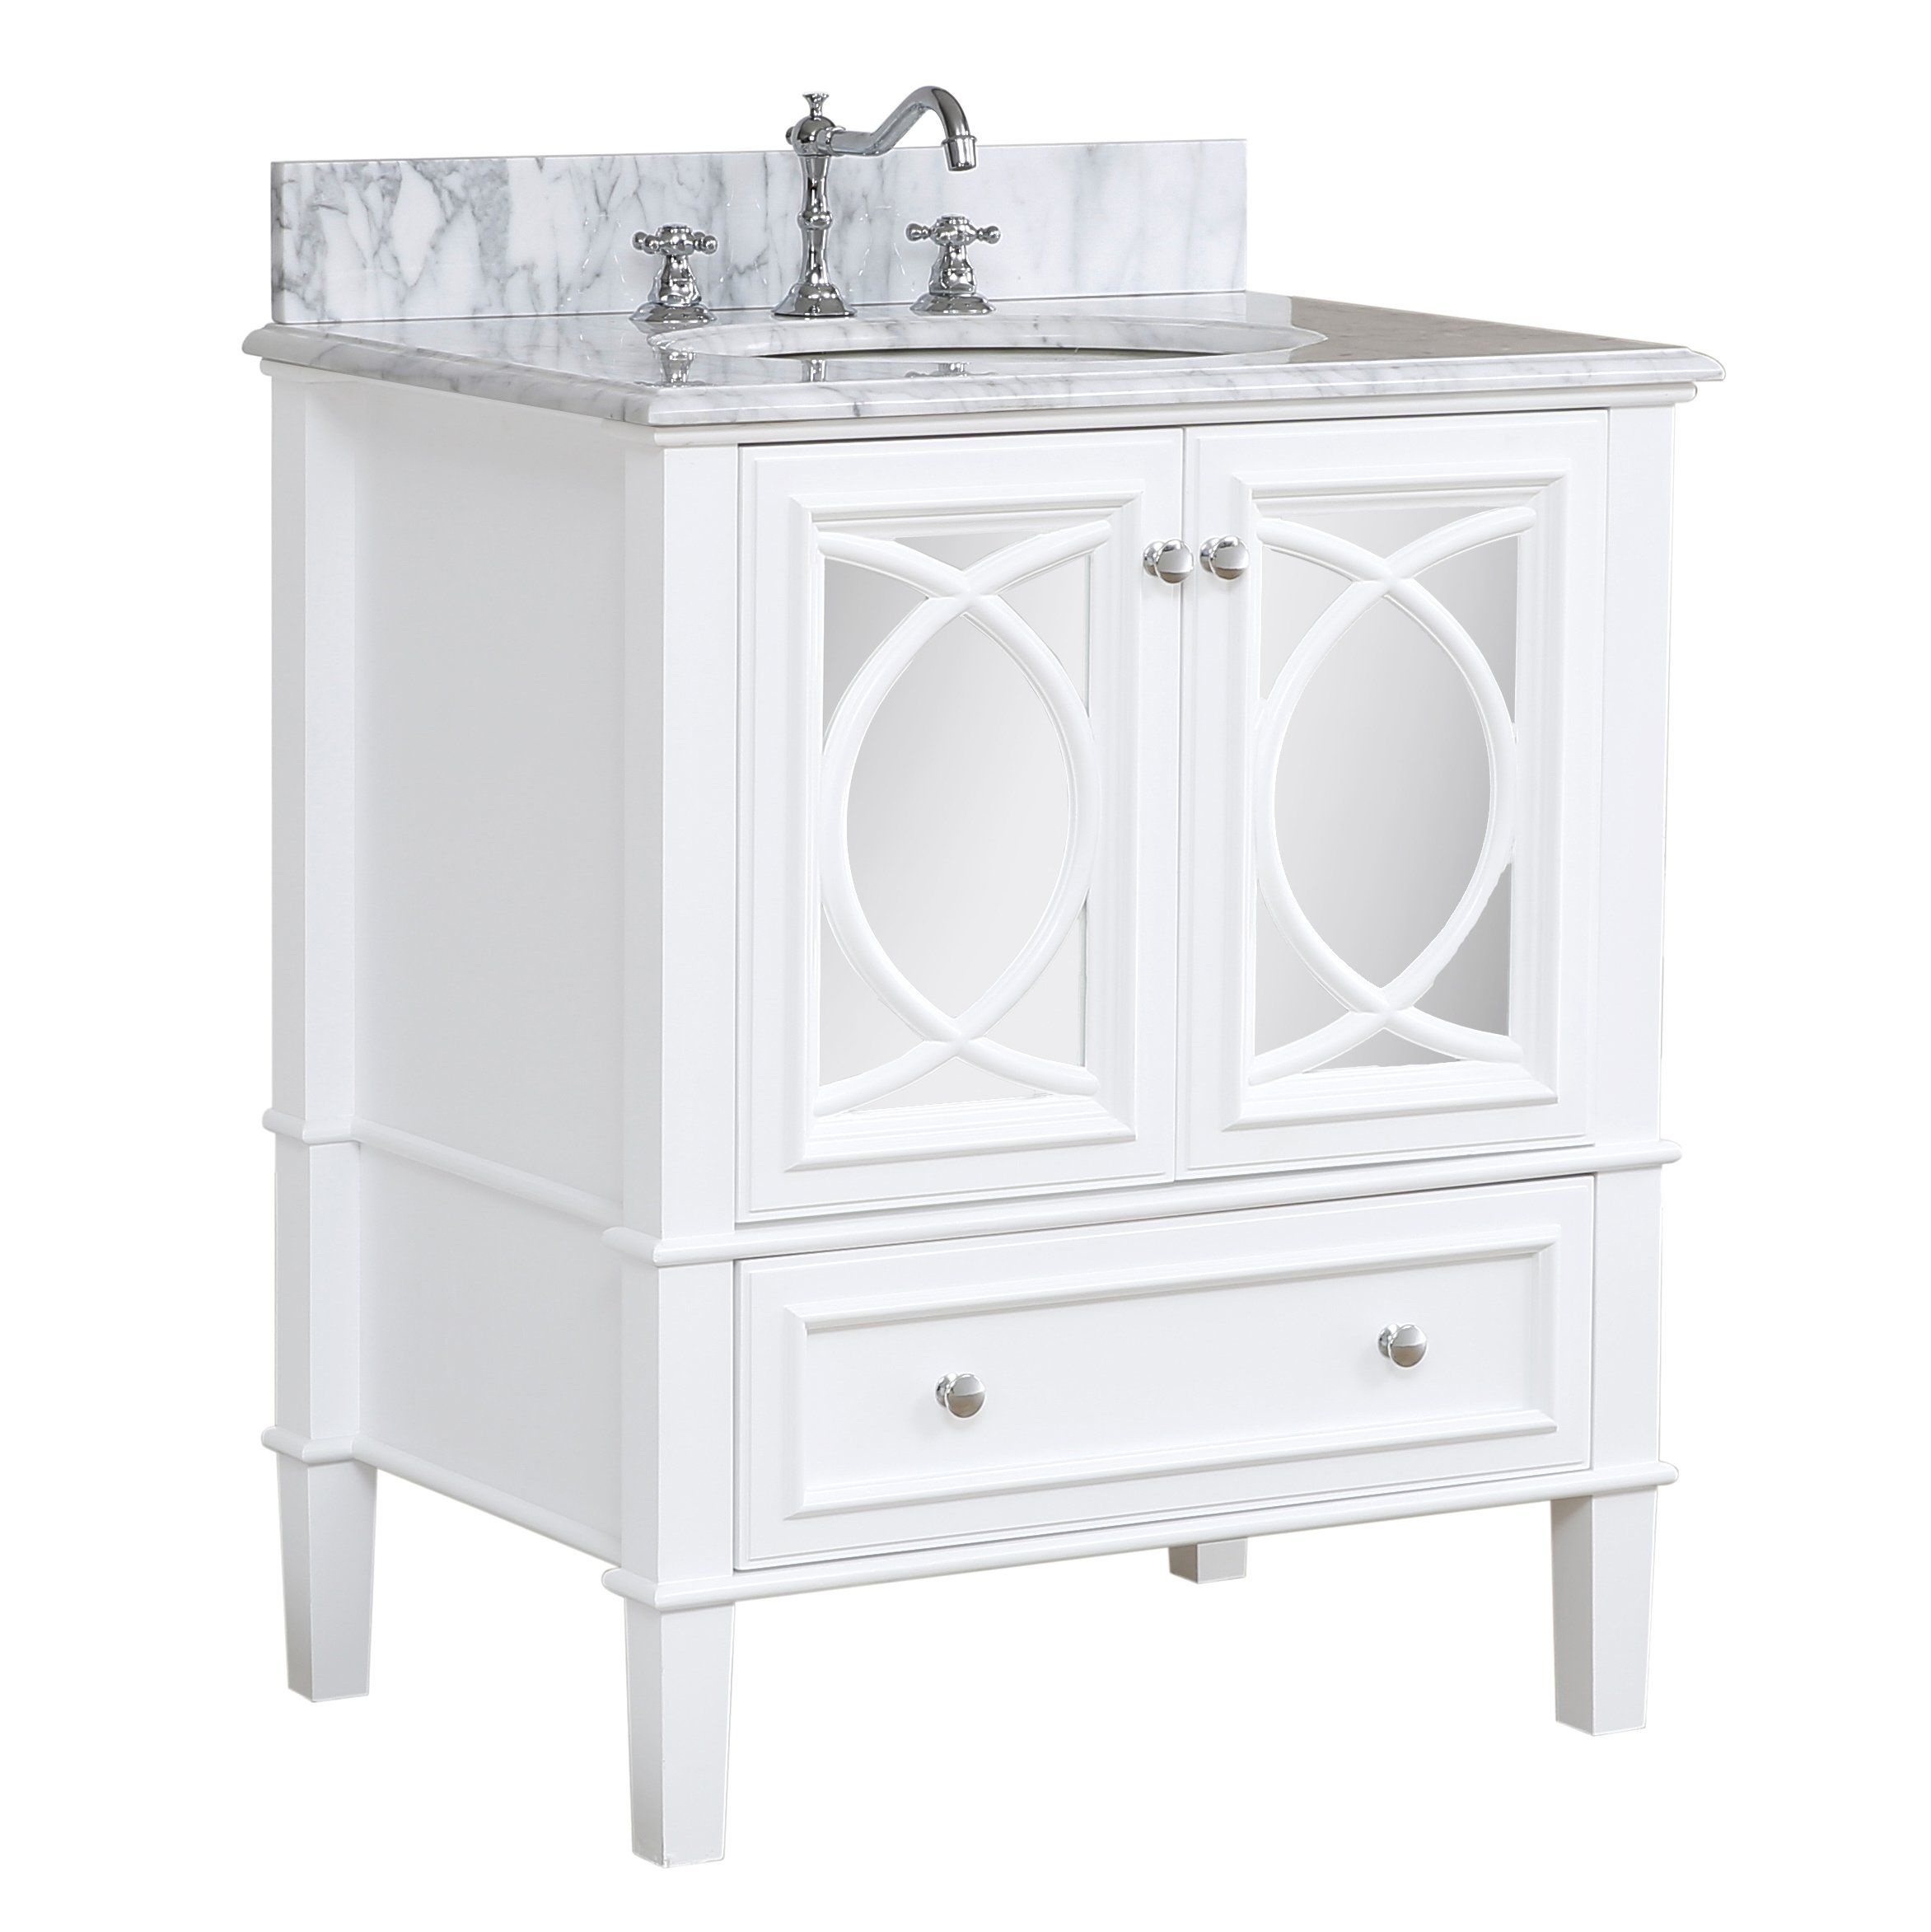 Olivia 30inch Vanity (Carrara/White) 30 inch bathroom